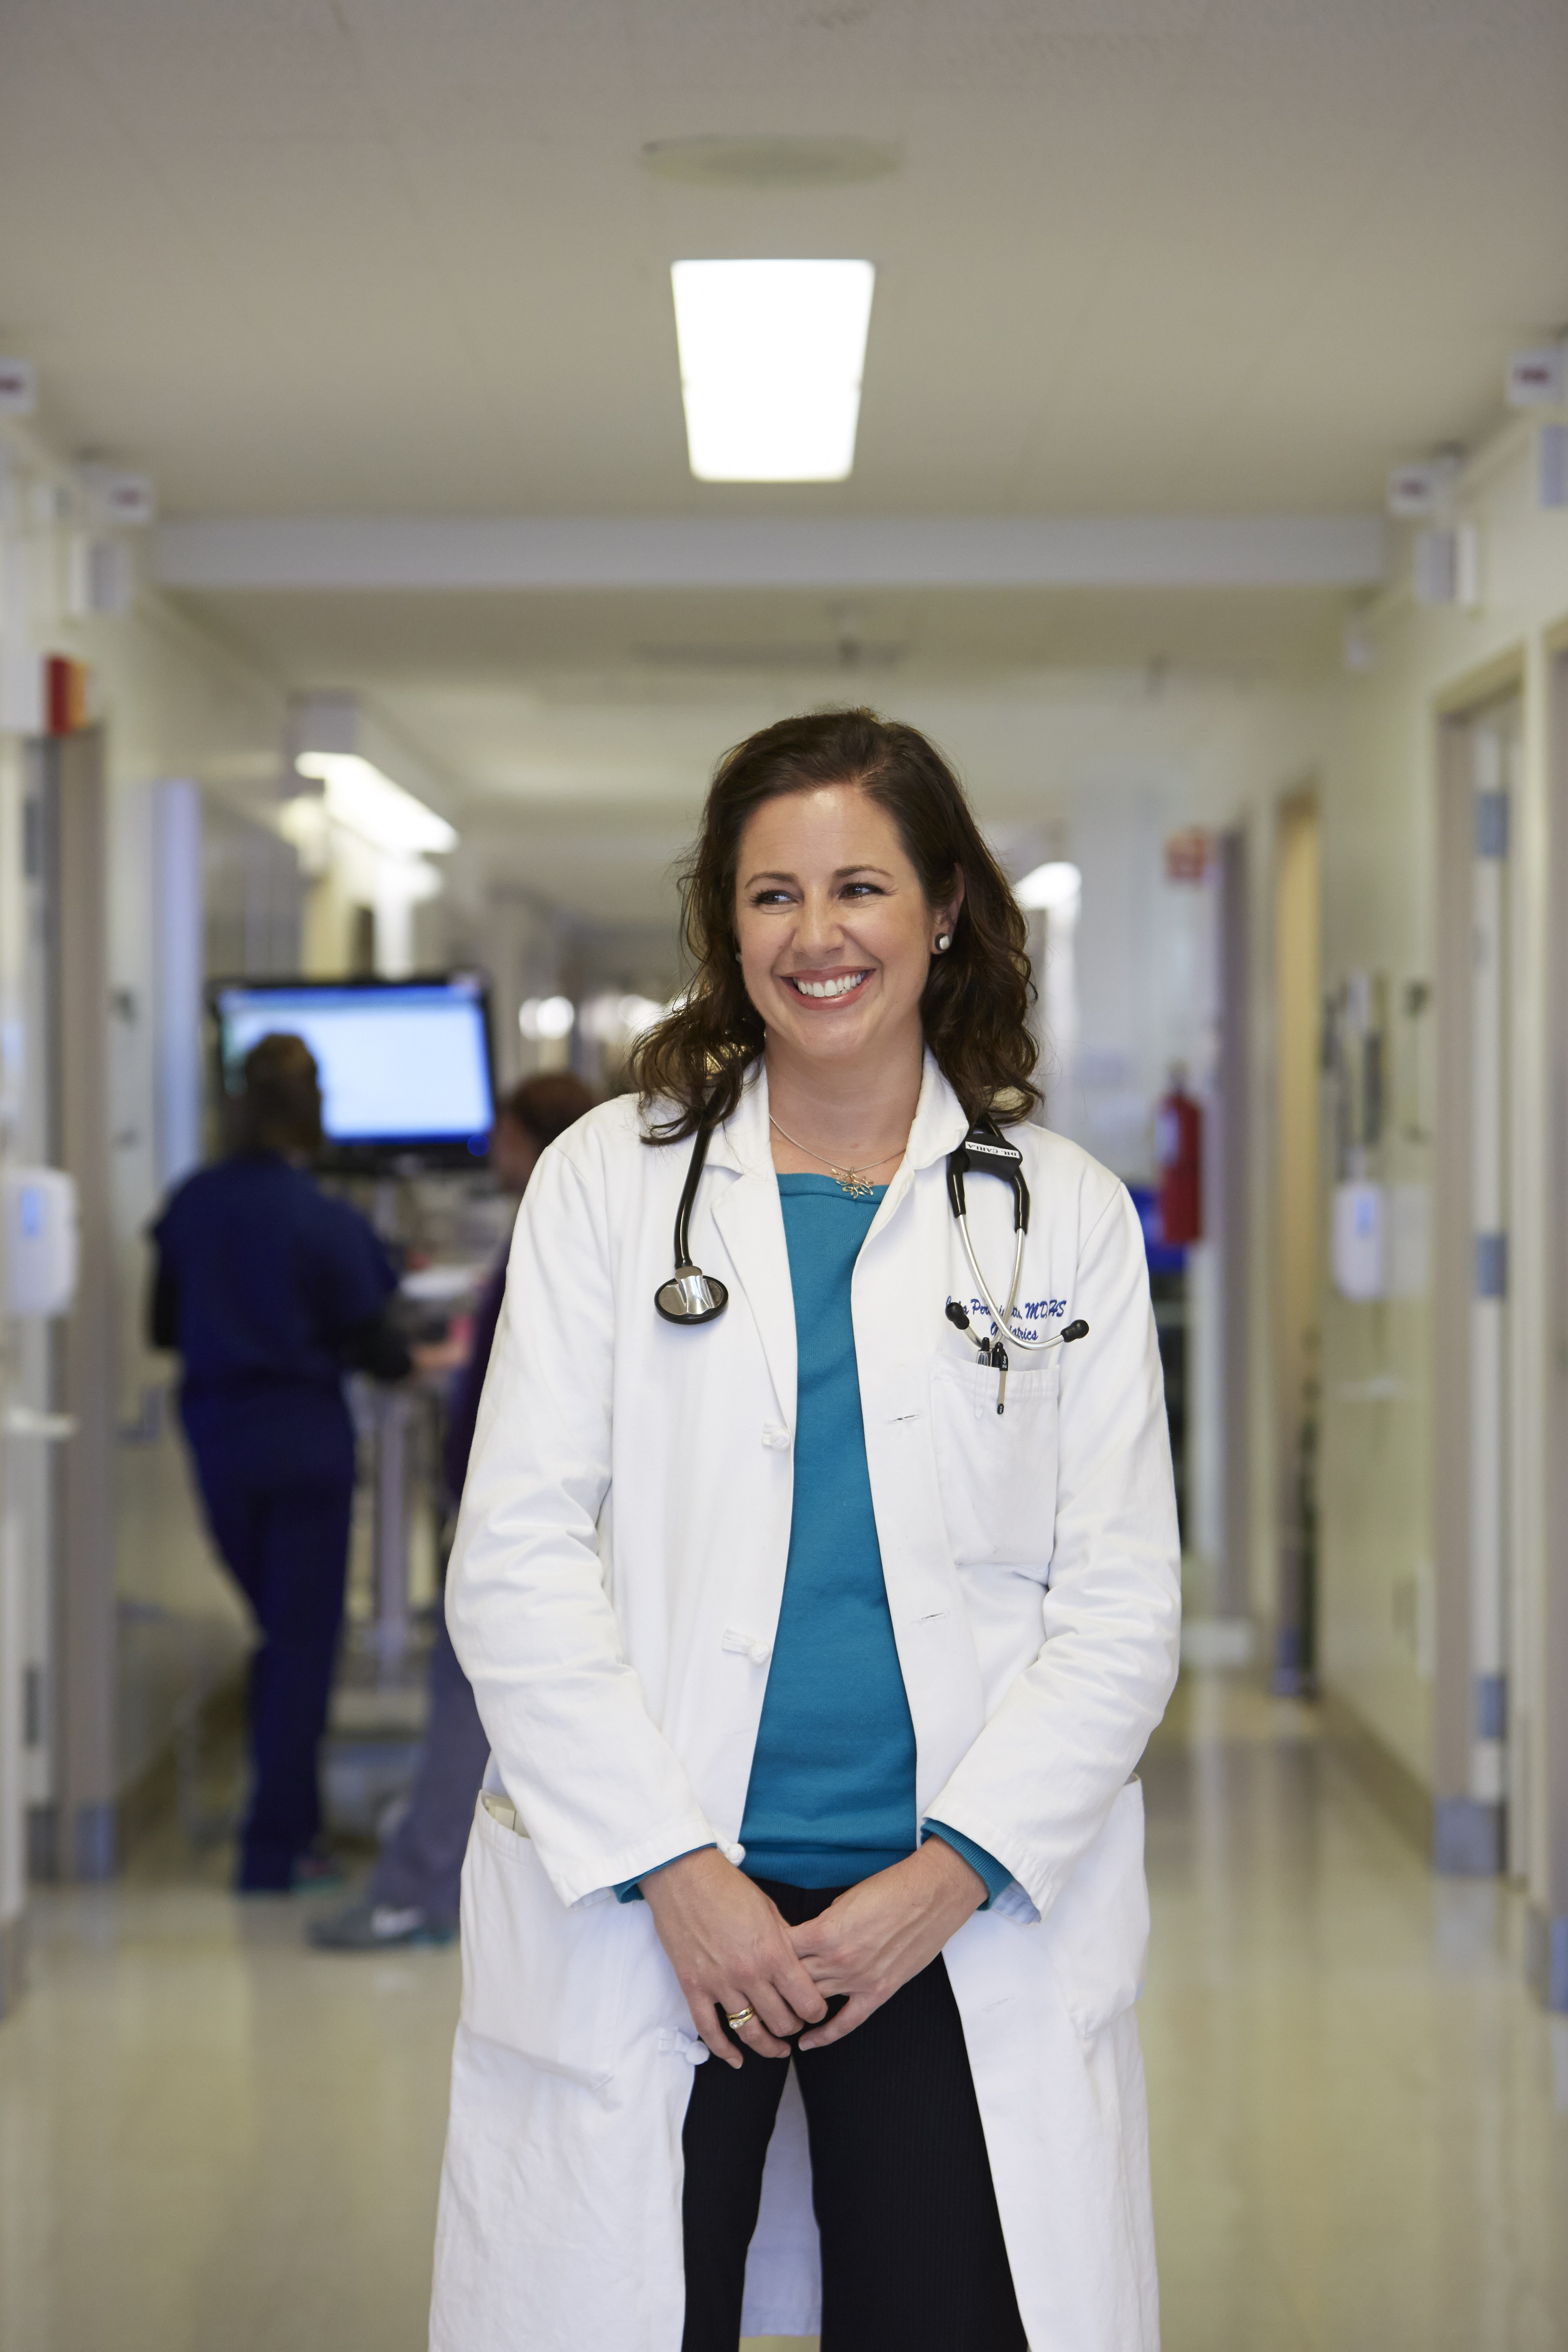 Dr. Carla Perissinotto is an Assistant Clinical Professor in the Division of Geriatrics, Department of Medicine. (Courtesy of UCSF, SF General Hospital)